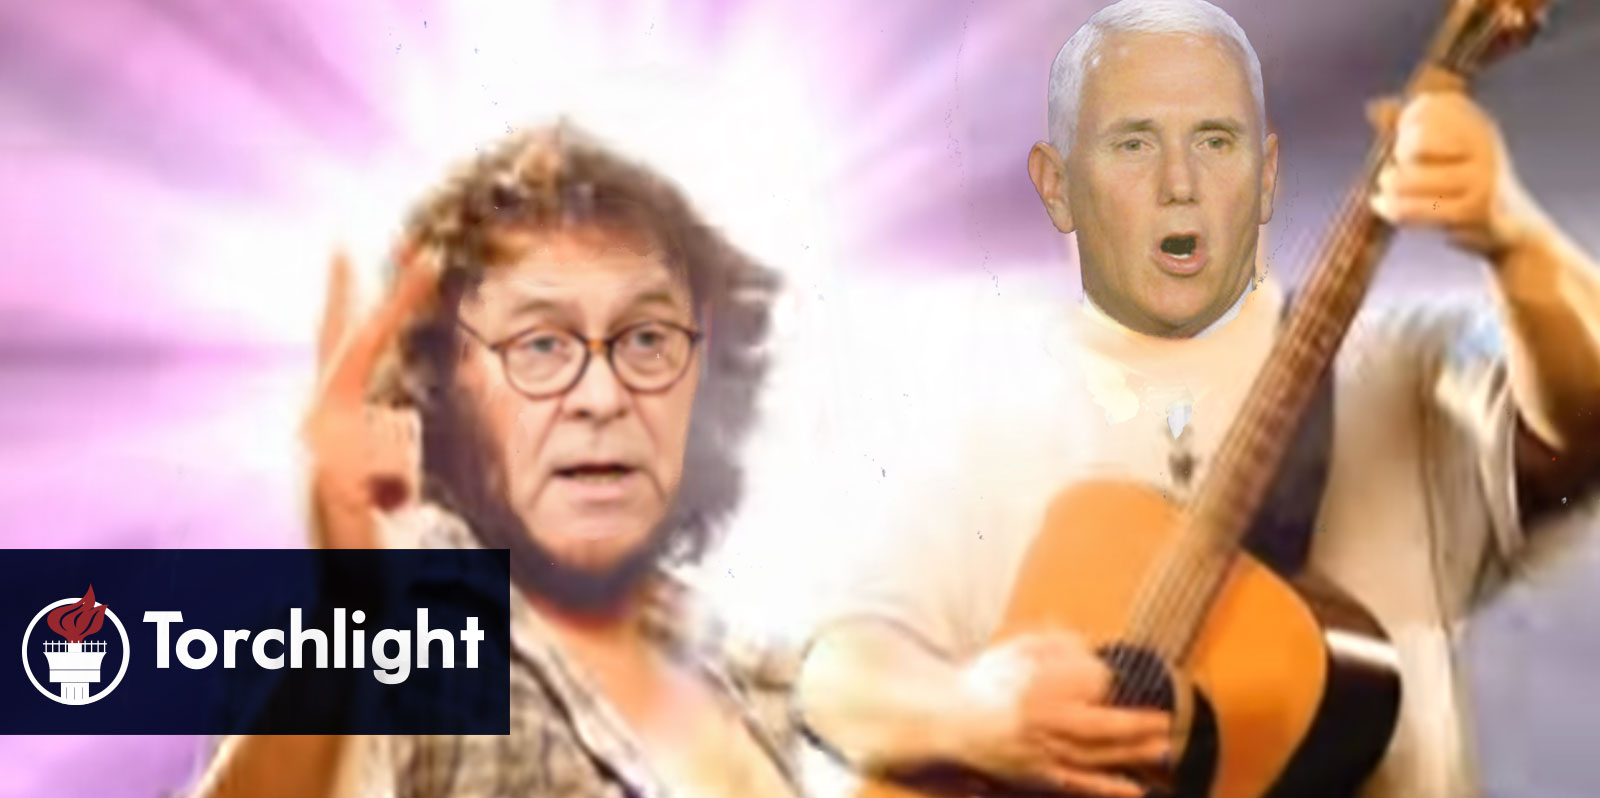 Barr and Pence's heads grafted onto a photo of Tenacious D